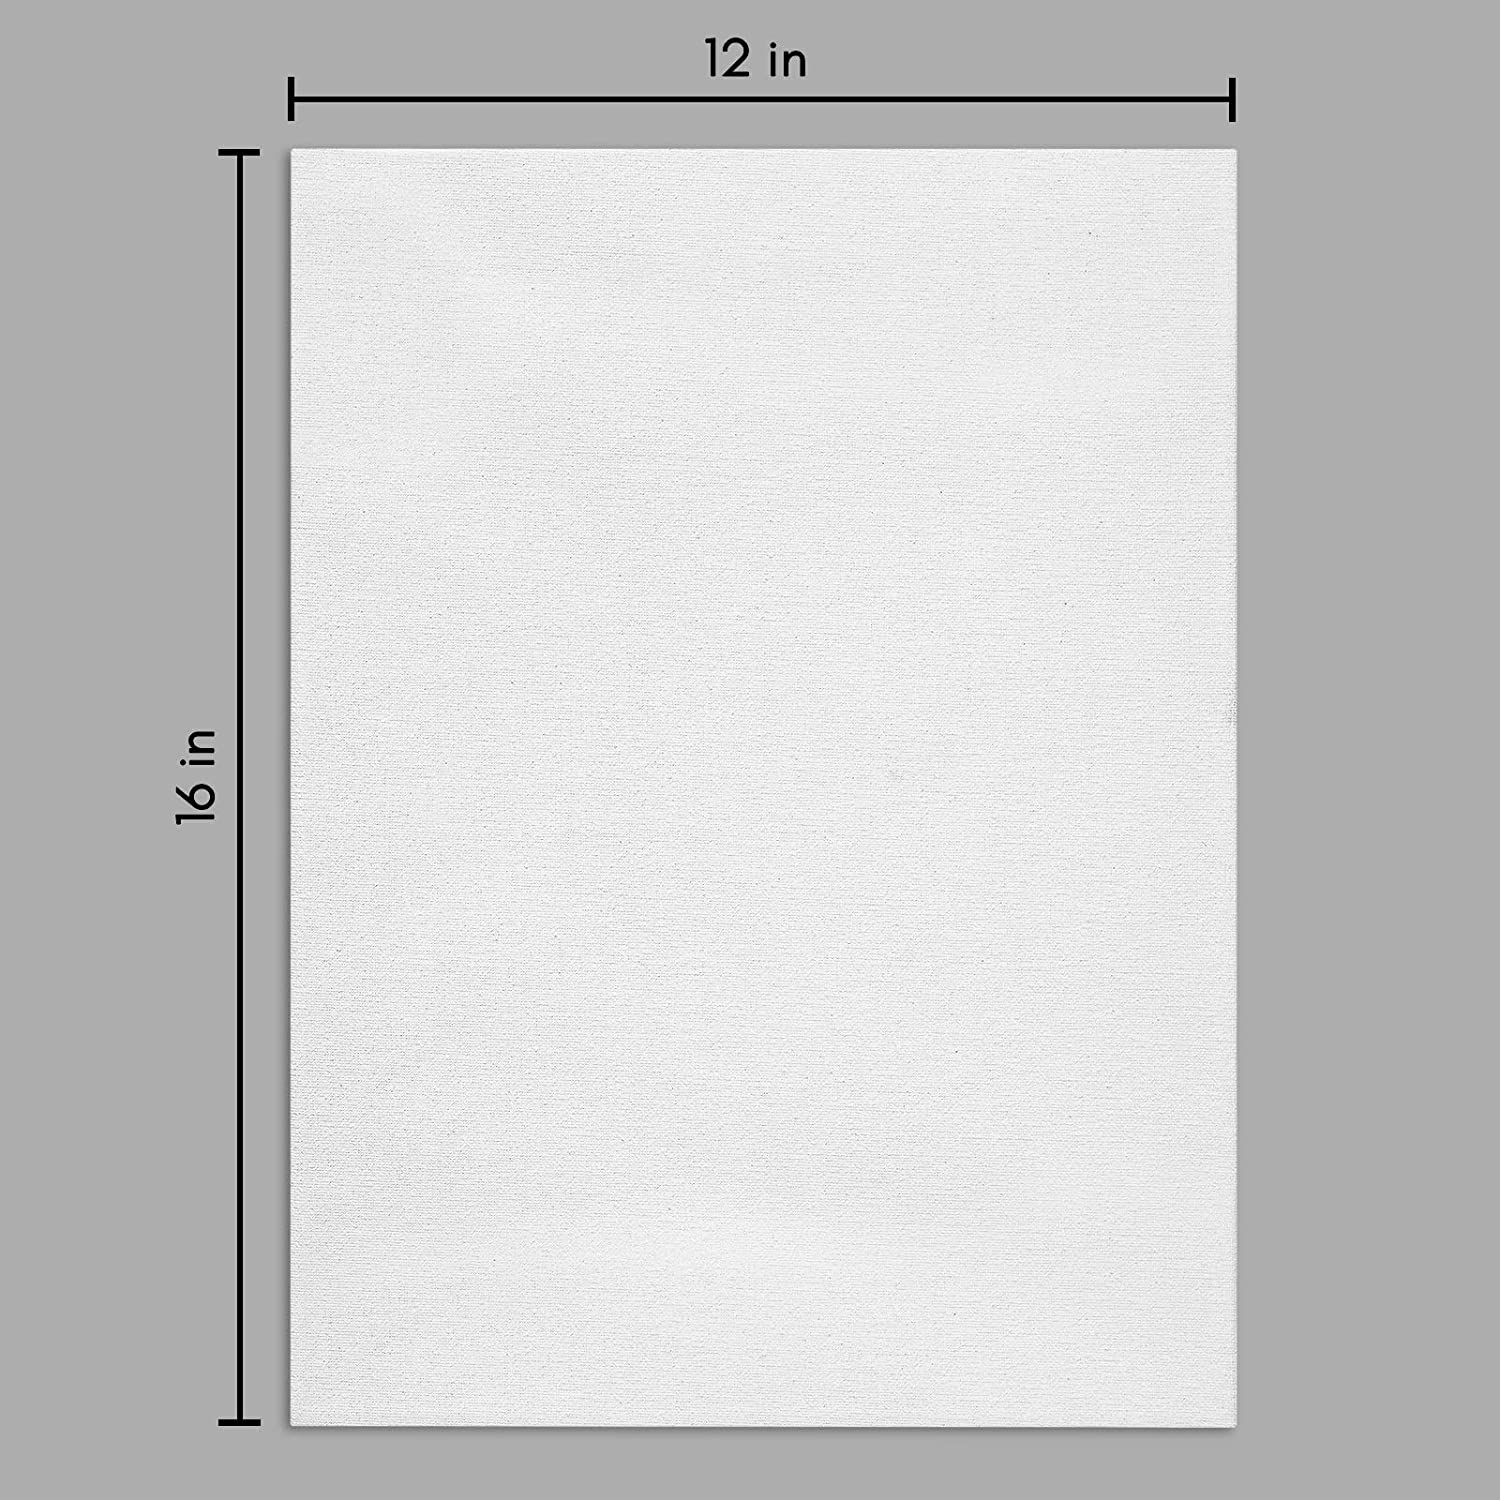 miniature 33 - Americanflat Stretched Canvas in White 100% Cotton Wooden Frames & Acid Free